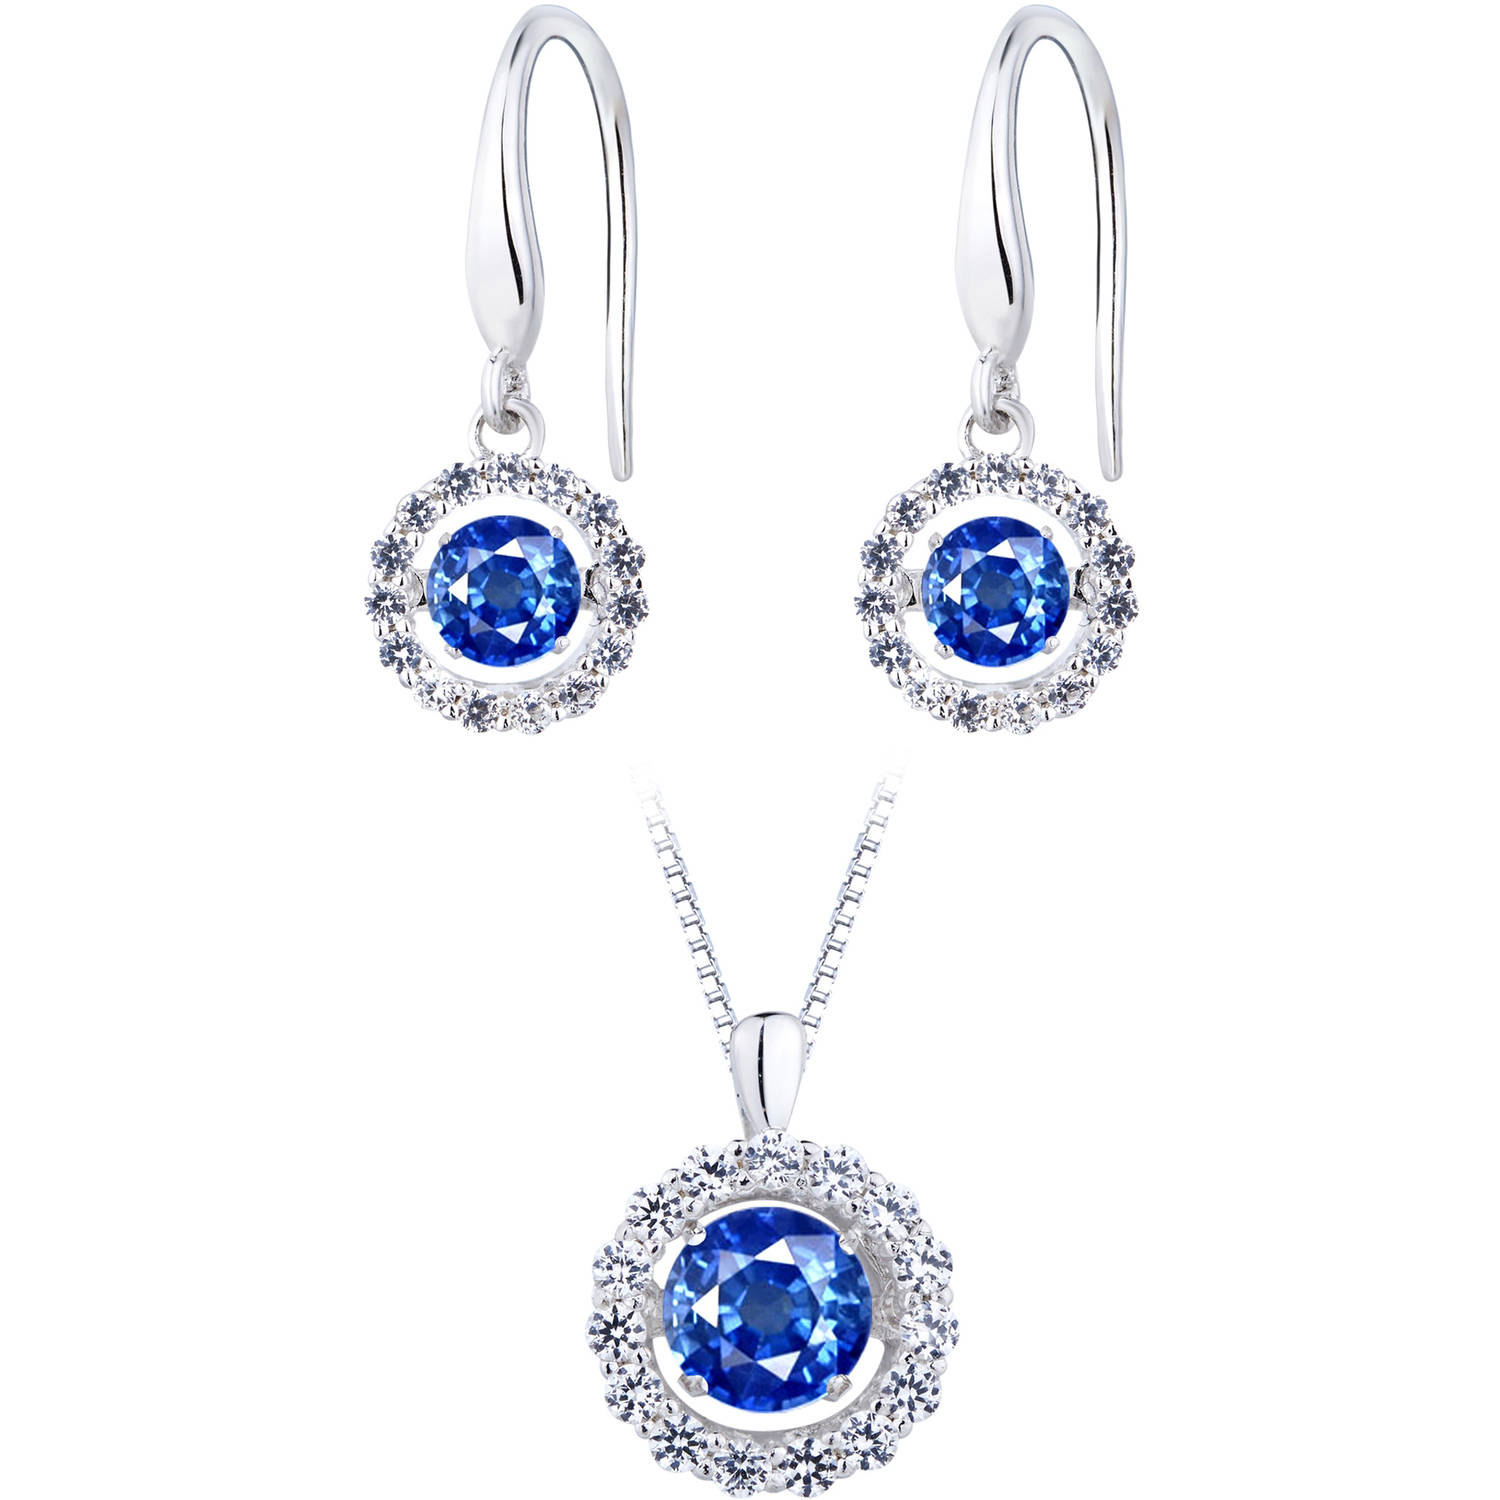 Lab Created Blue Sapphire Dancing Stone Silver Earring and Pendant Set by Generic